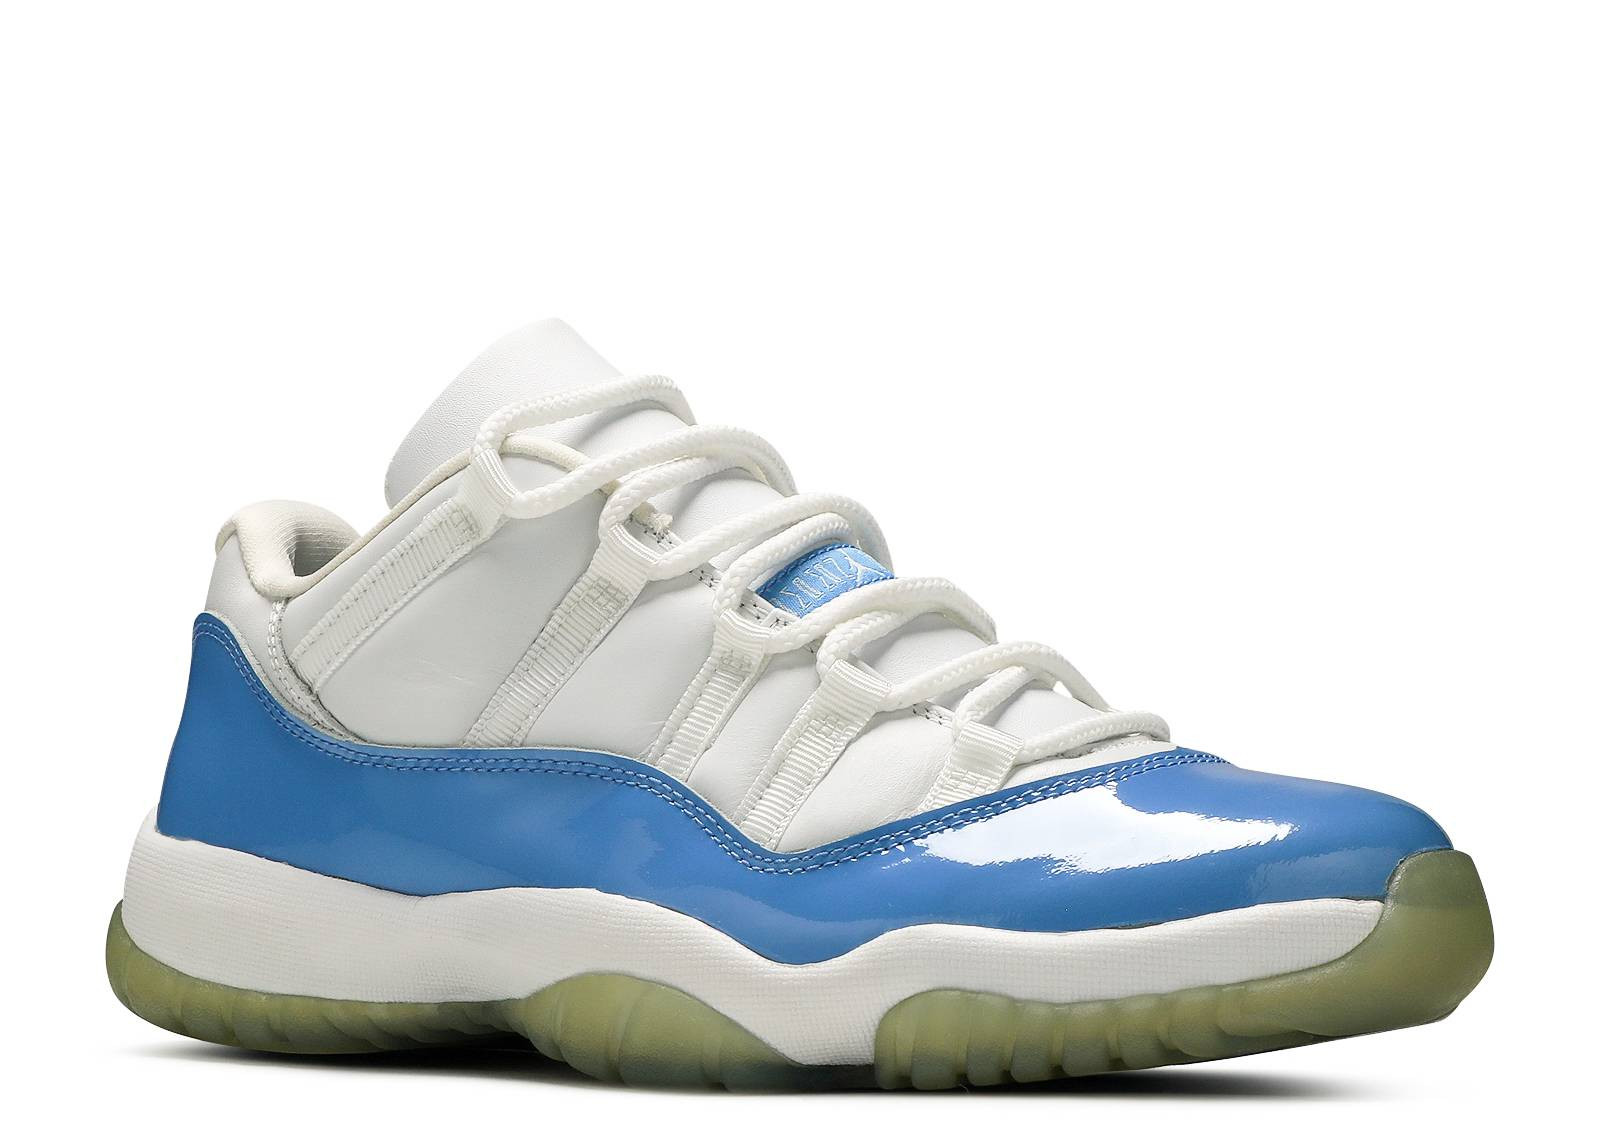 f888973ebd1 Air Jordan 11 Low Retro - Air Jordan - 136053 141 - white columbia ...